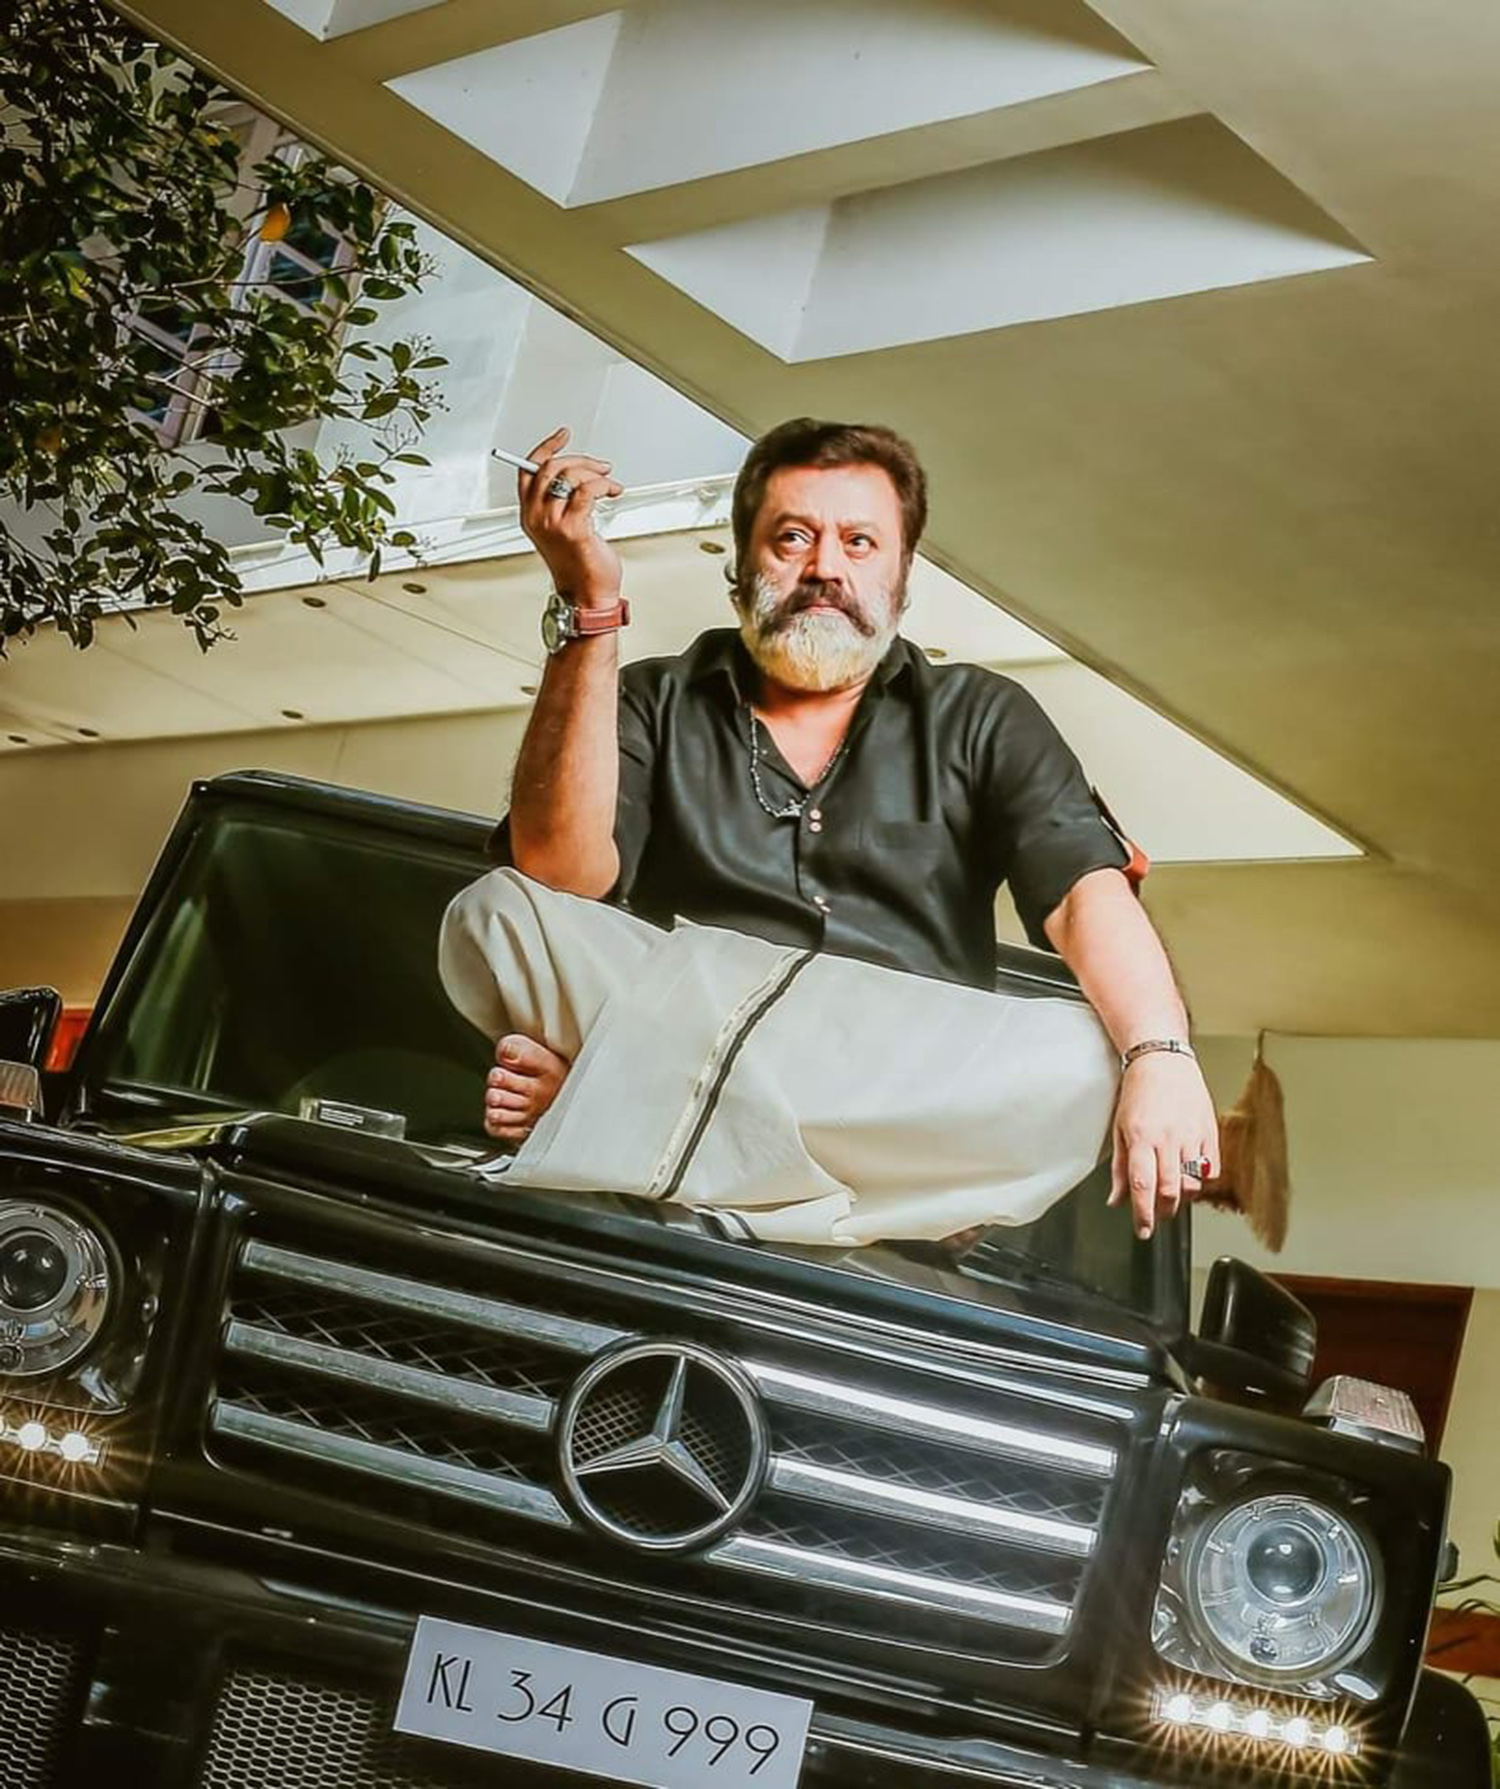 suresh gopi,suresh gopi 250th film,first look poster suresh gopi 250th film,suresh gopi new films,suresh gopi upcoming film 2020,suresh gopi new look images,suresh gopi salt and pepper look,latest malayalam news,malayalam cinema news,latest malayalam entertainment news